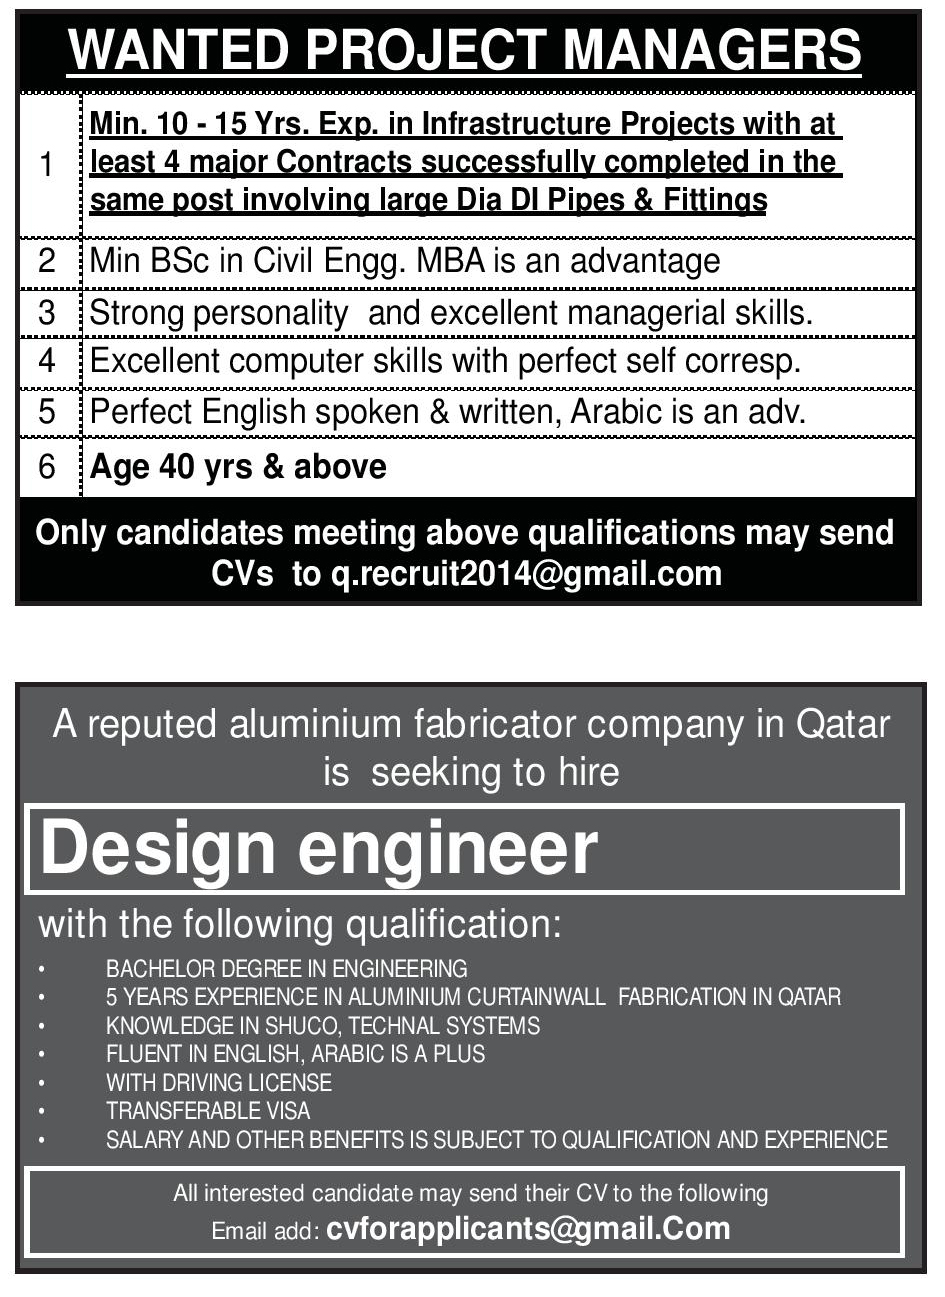 VACANCIES PUBLISHED IN QATAR GULF TIMES PAPER RELEASED ON 12-03-2018